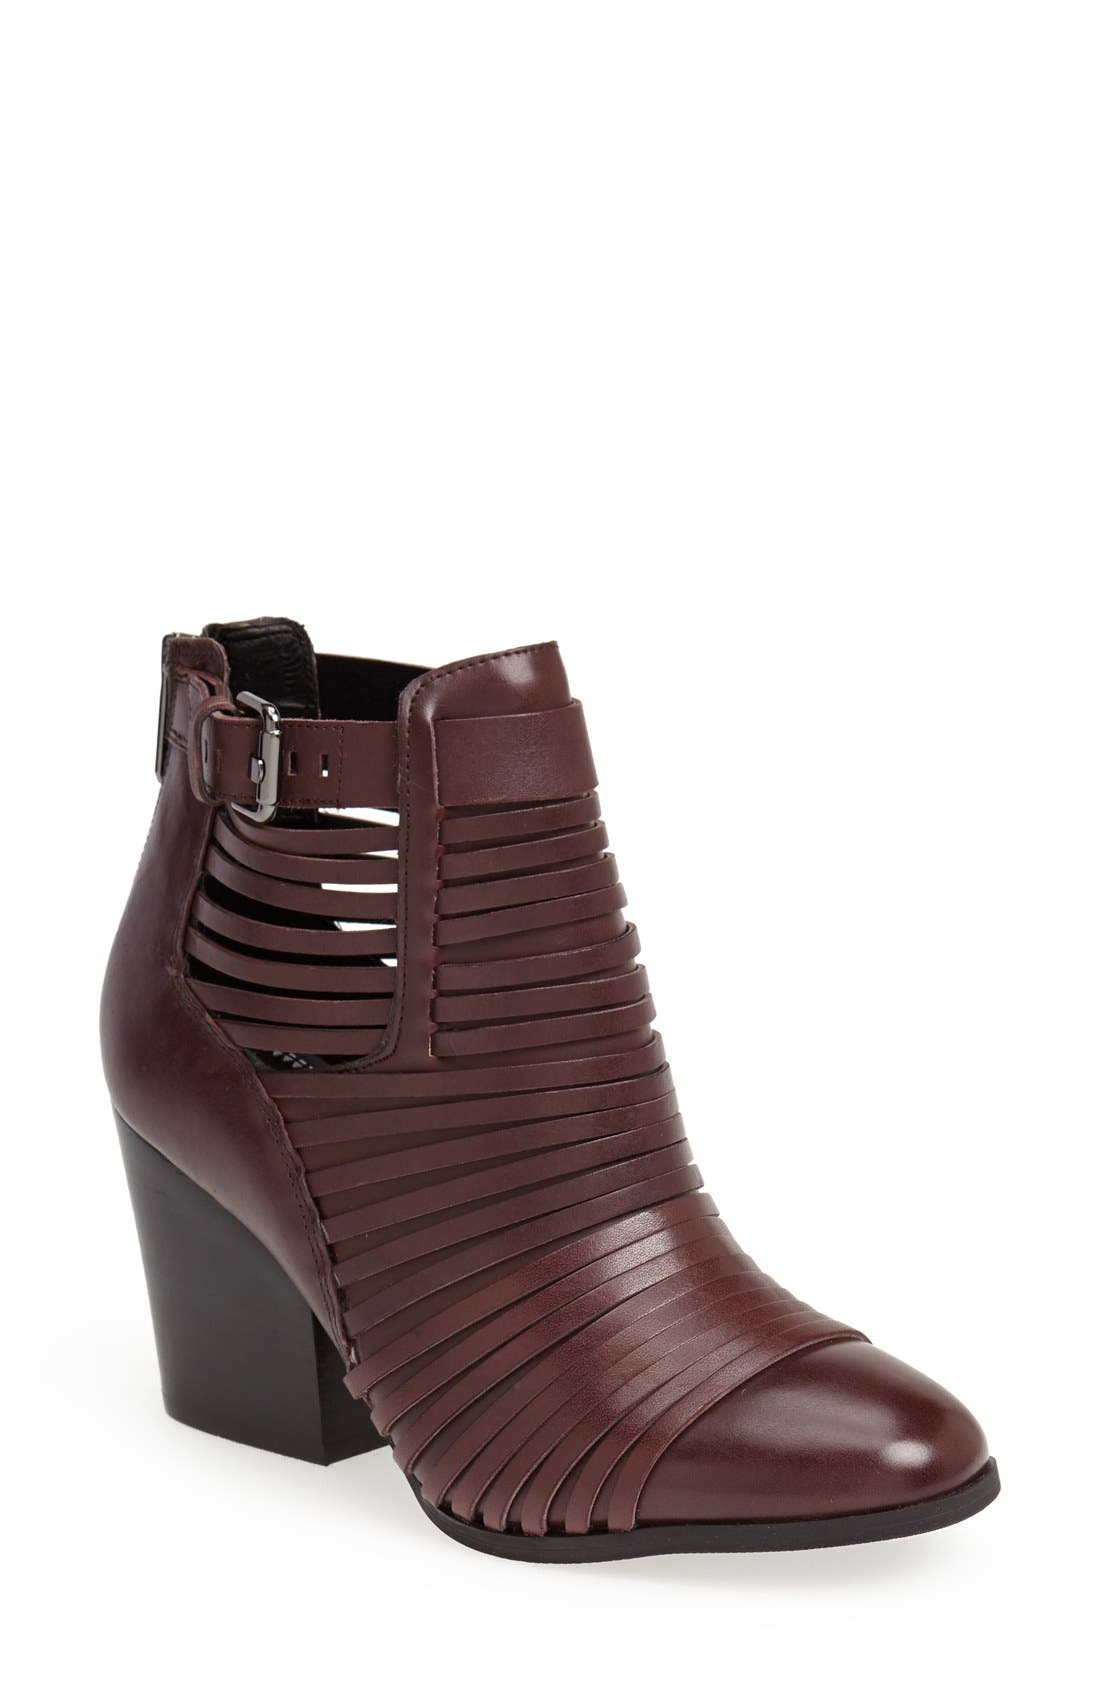 Alternate Image 1 Selected - Circus by Sam Edelman 'Talon' Bootie (Women)